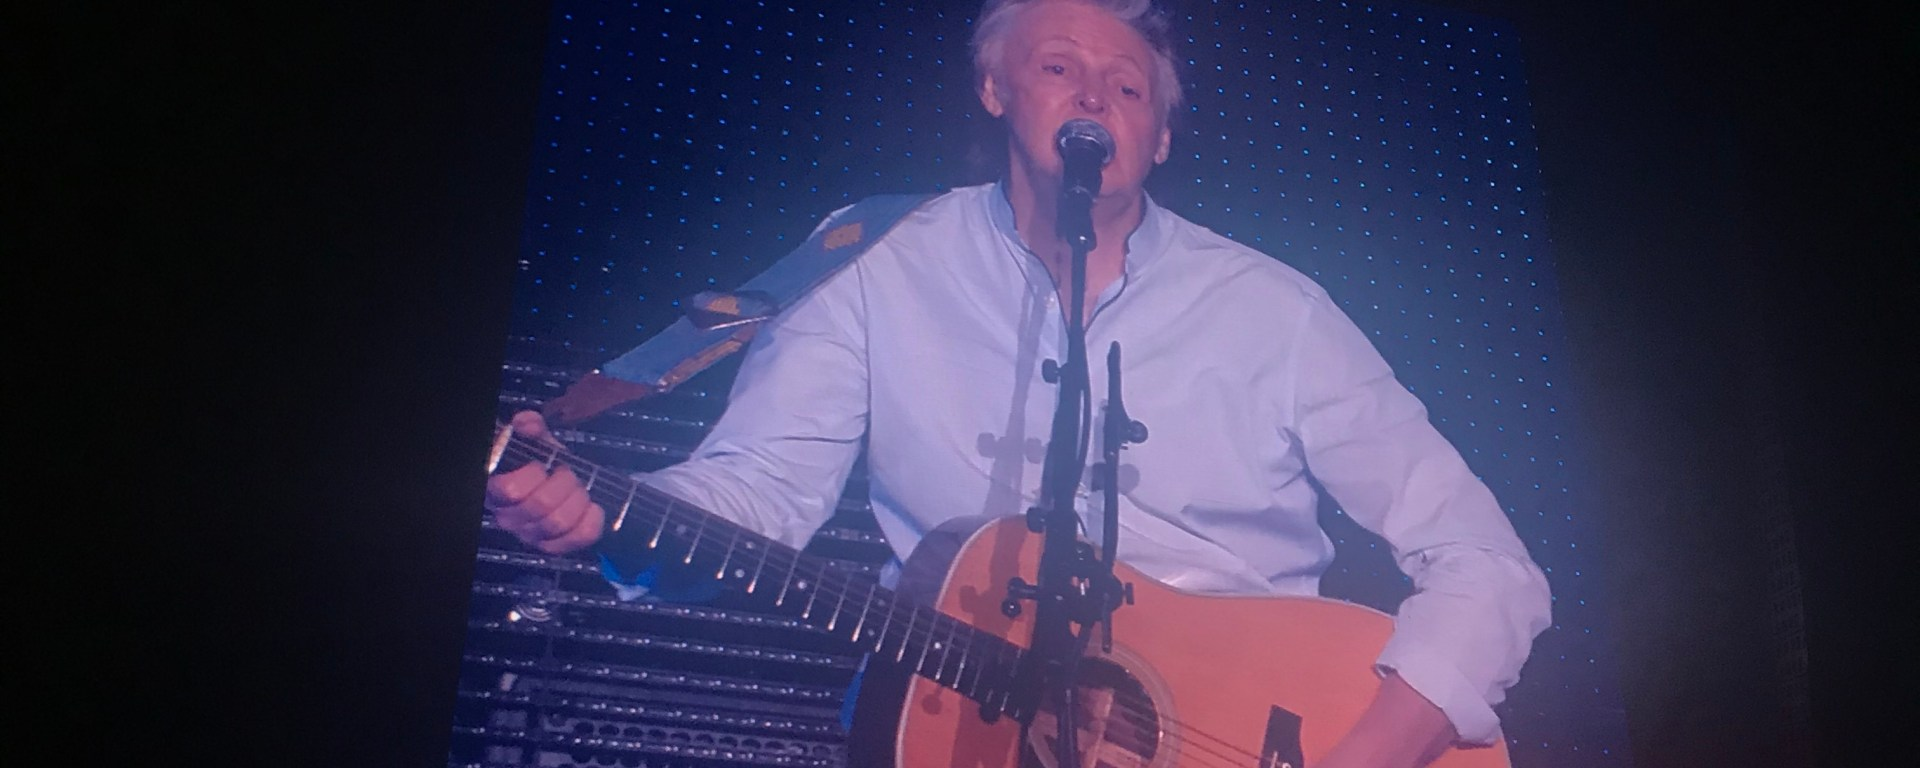 A photo from a concert showing Paul McCartney on stage looking and singing at the crowd while playing his acoustic guitar.